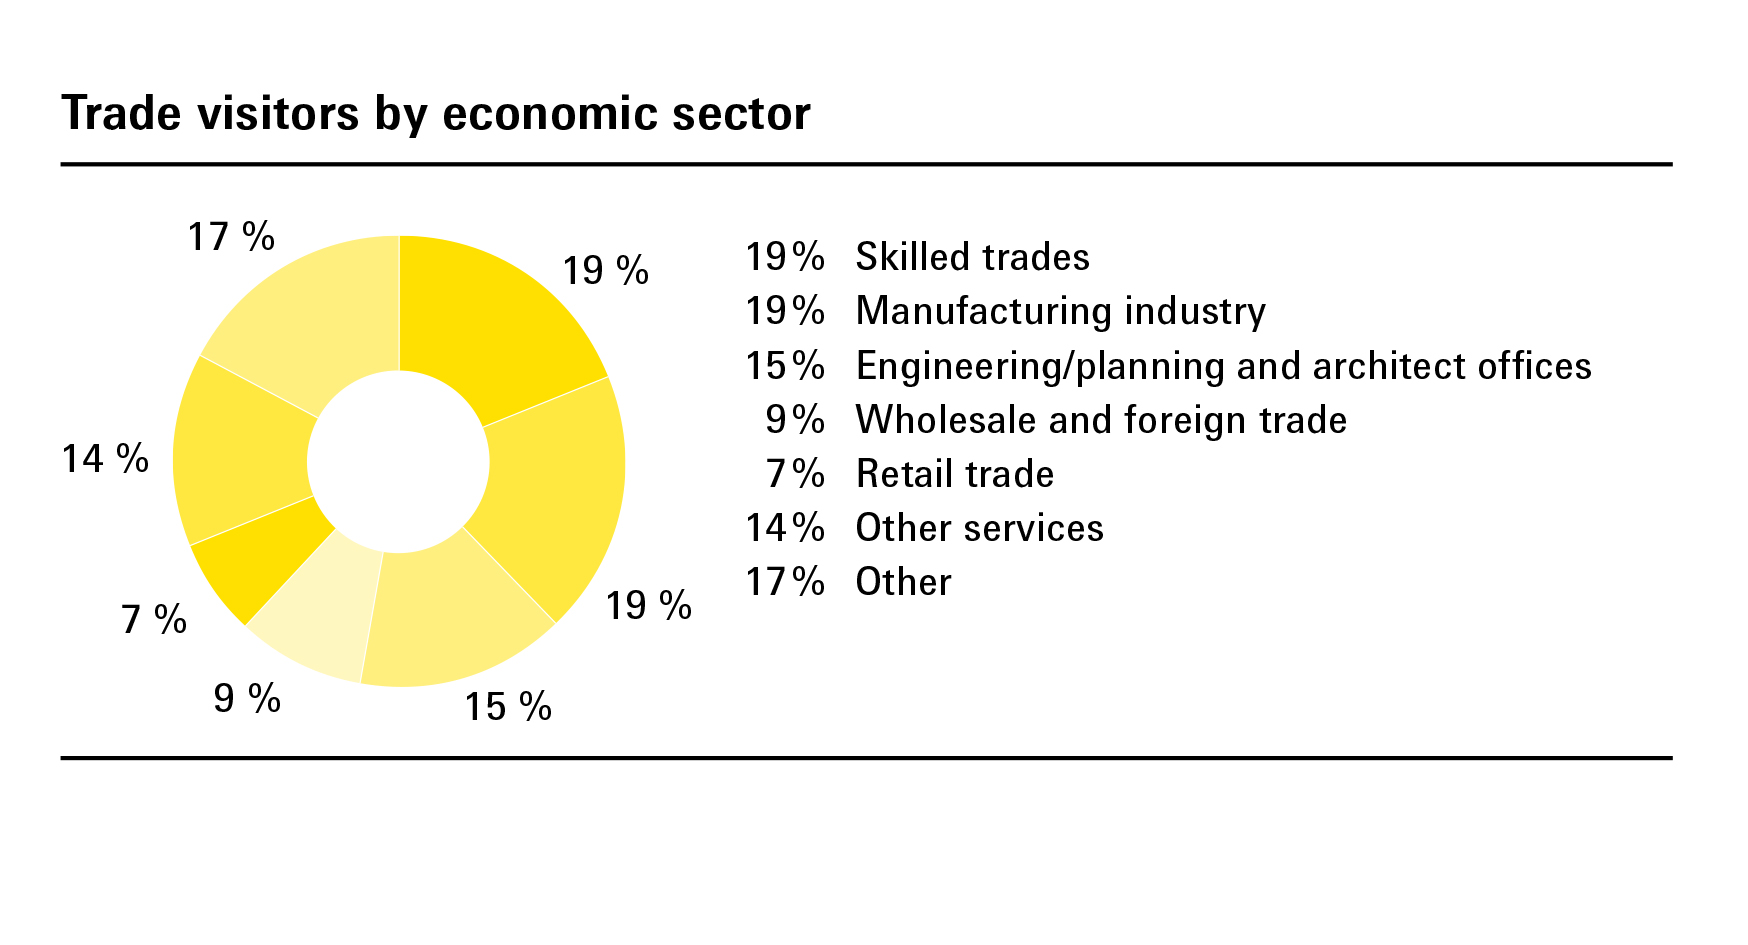 Trade visitors by economic sectors